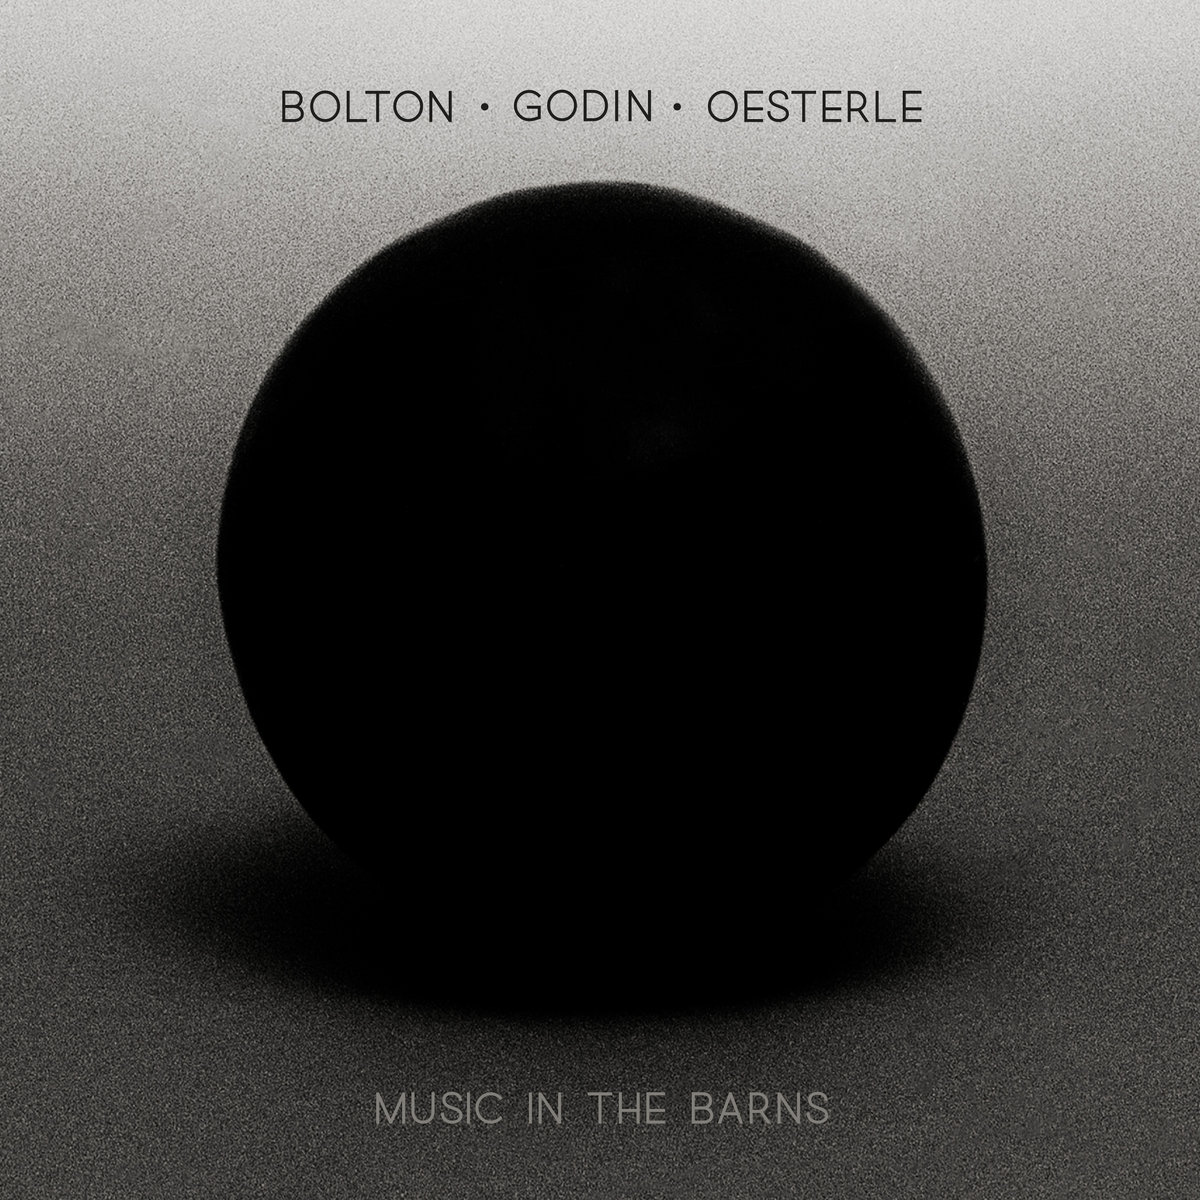 Music in the Barns: Bolton - Godin - Oesterle | New Focus